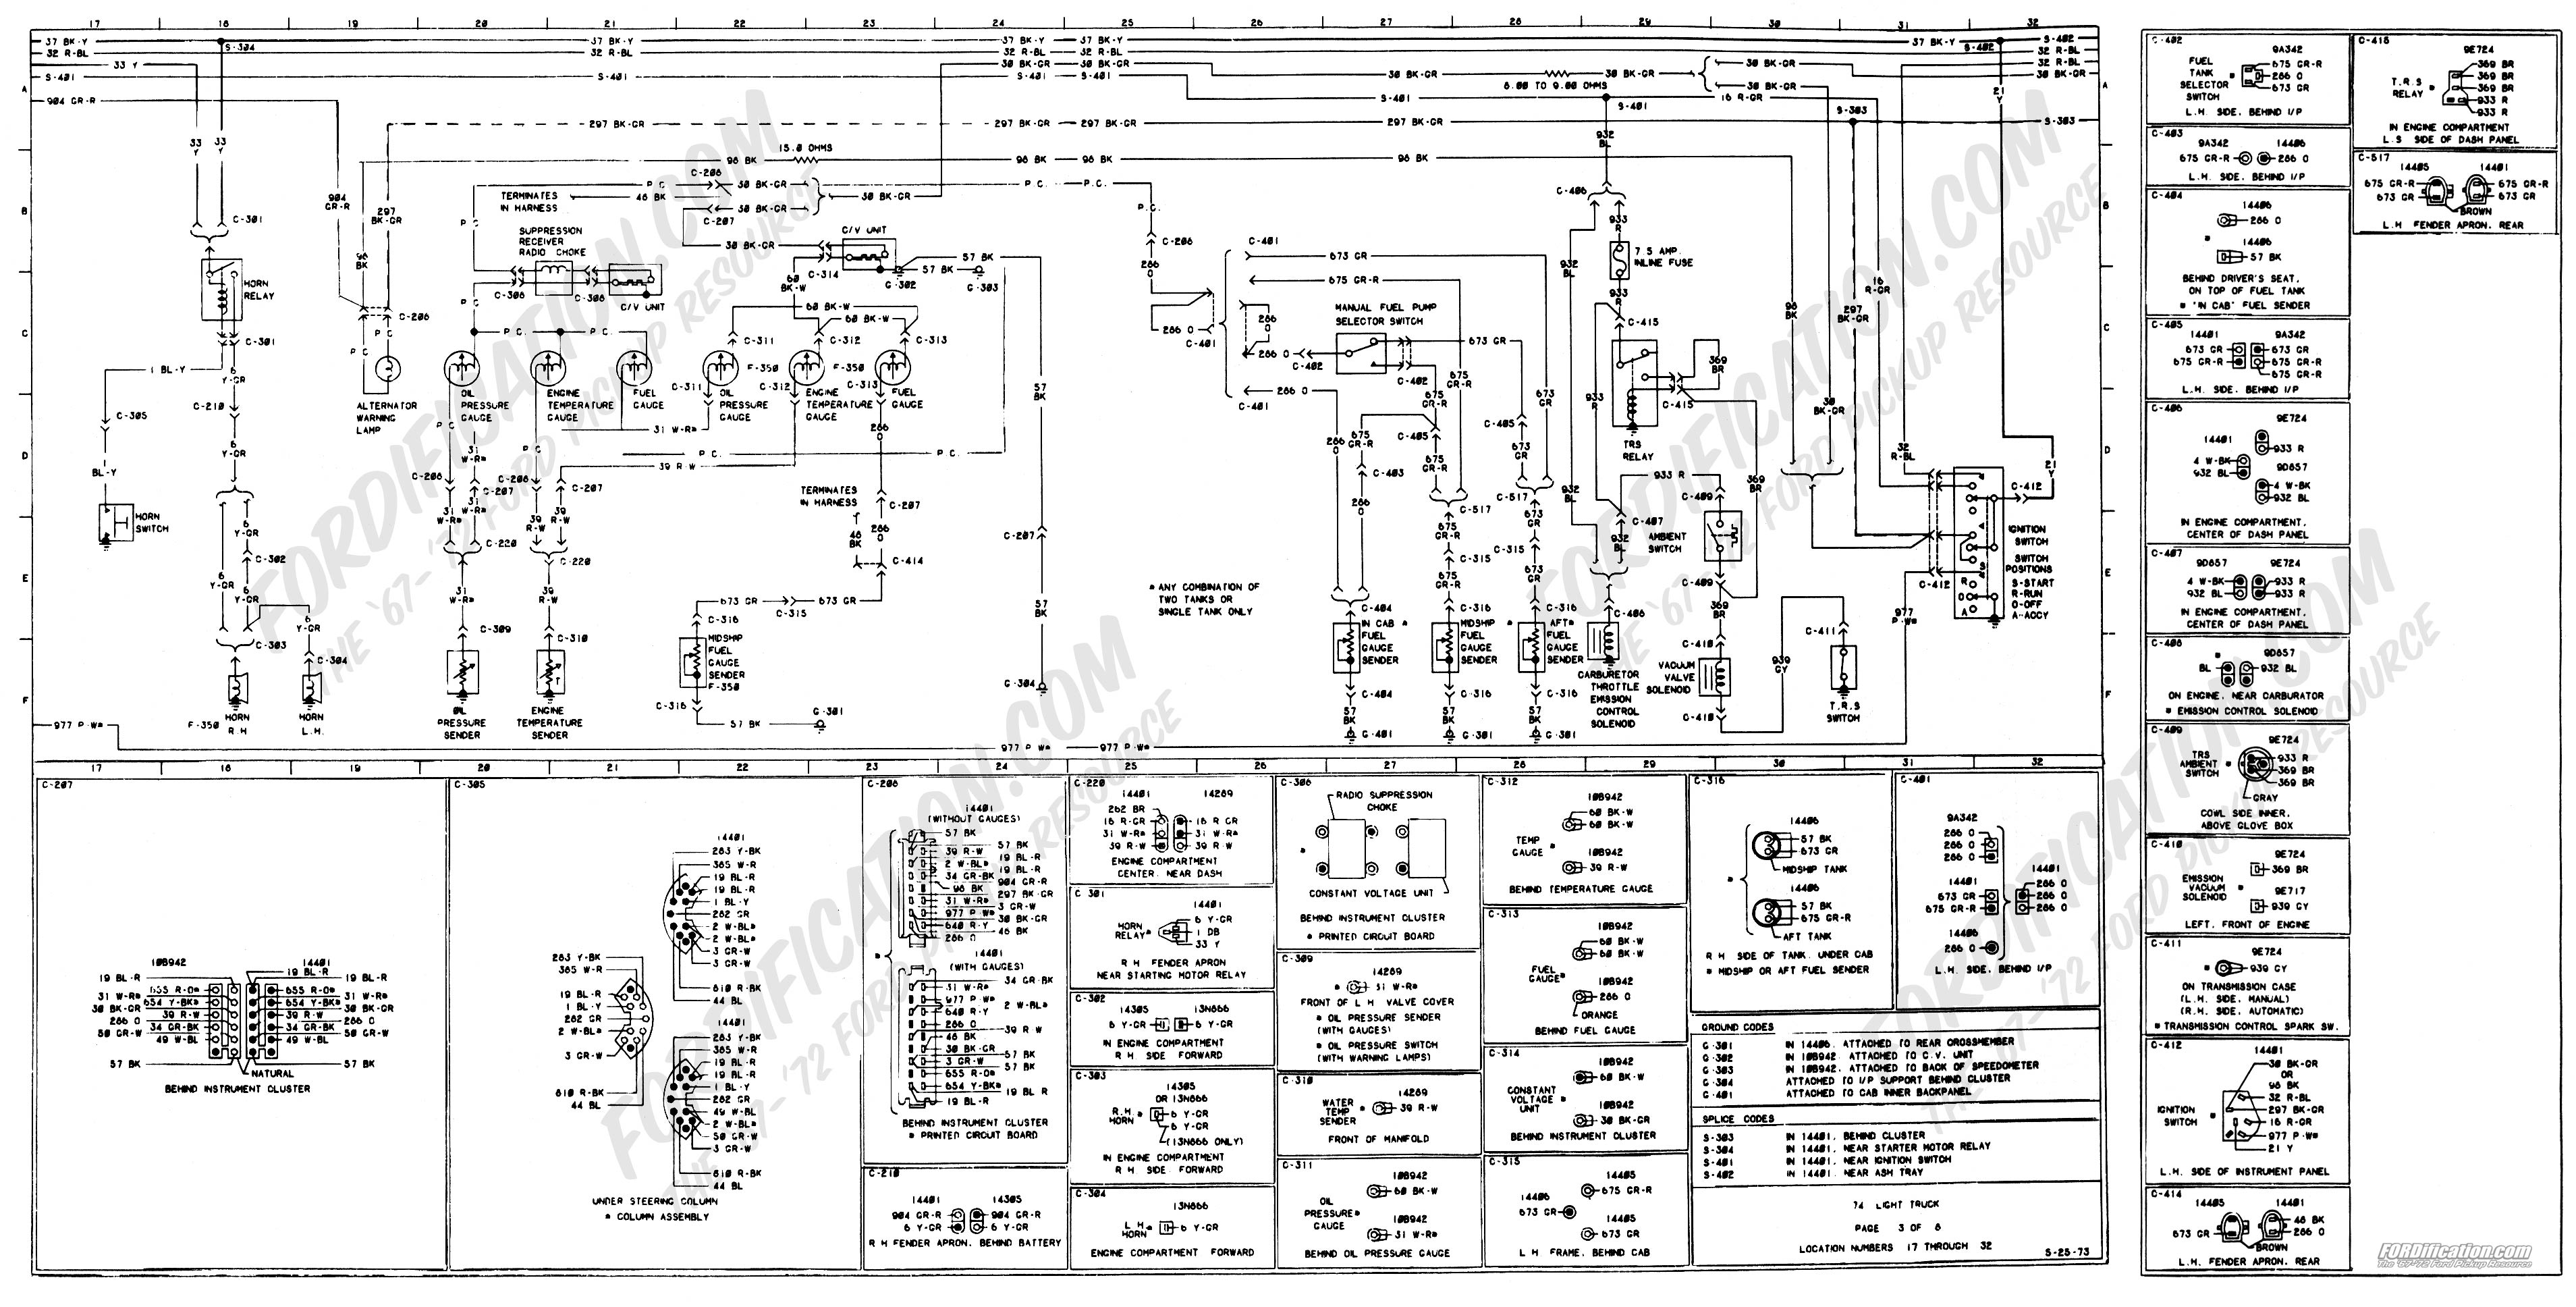 wiring_74master_3of8 1973 1979 ford truck wiring diagrams & schematics fordification net 1979 bronco fuse box diagram at bakdesigns.co